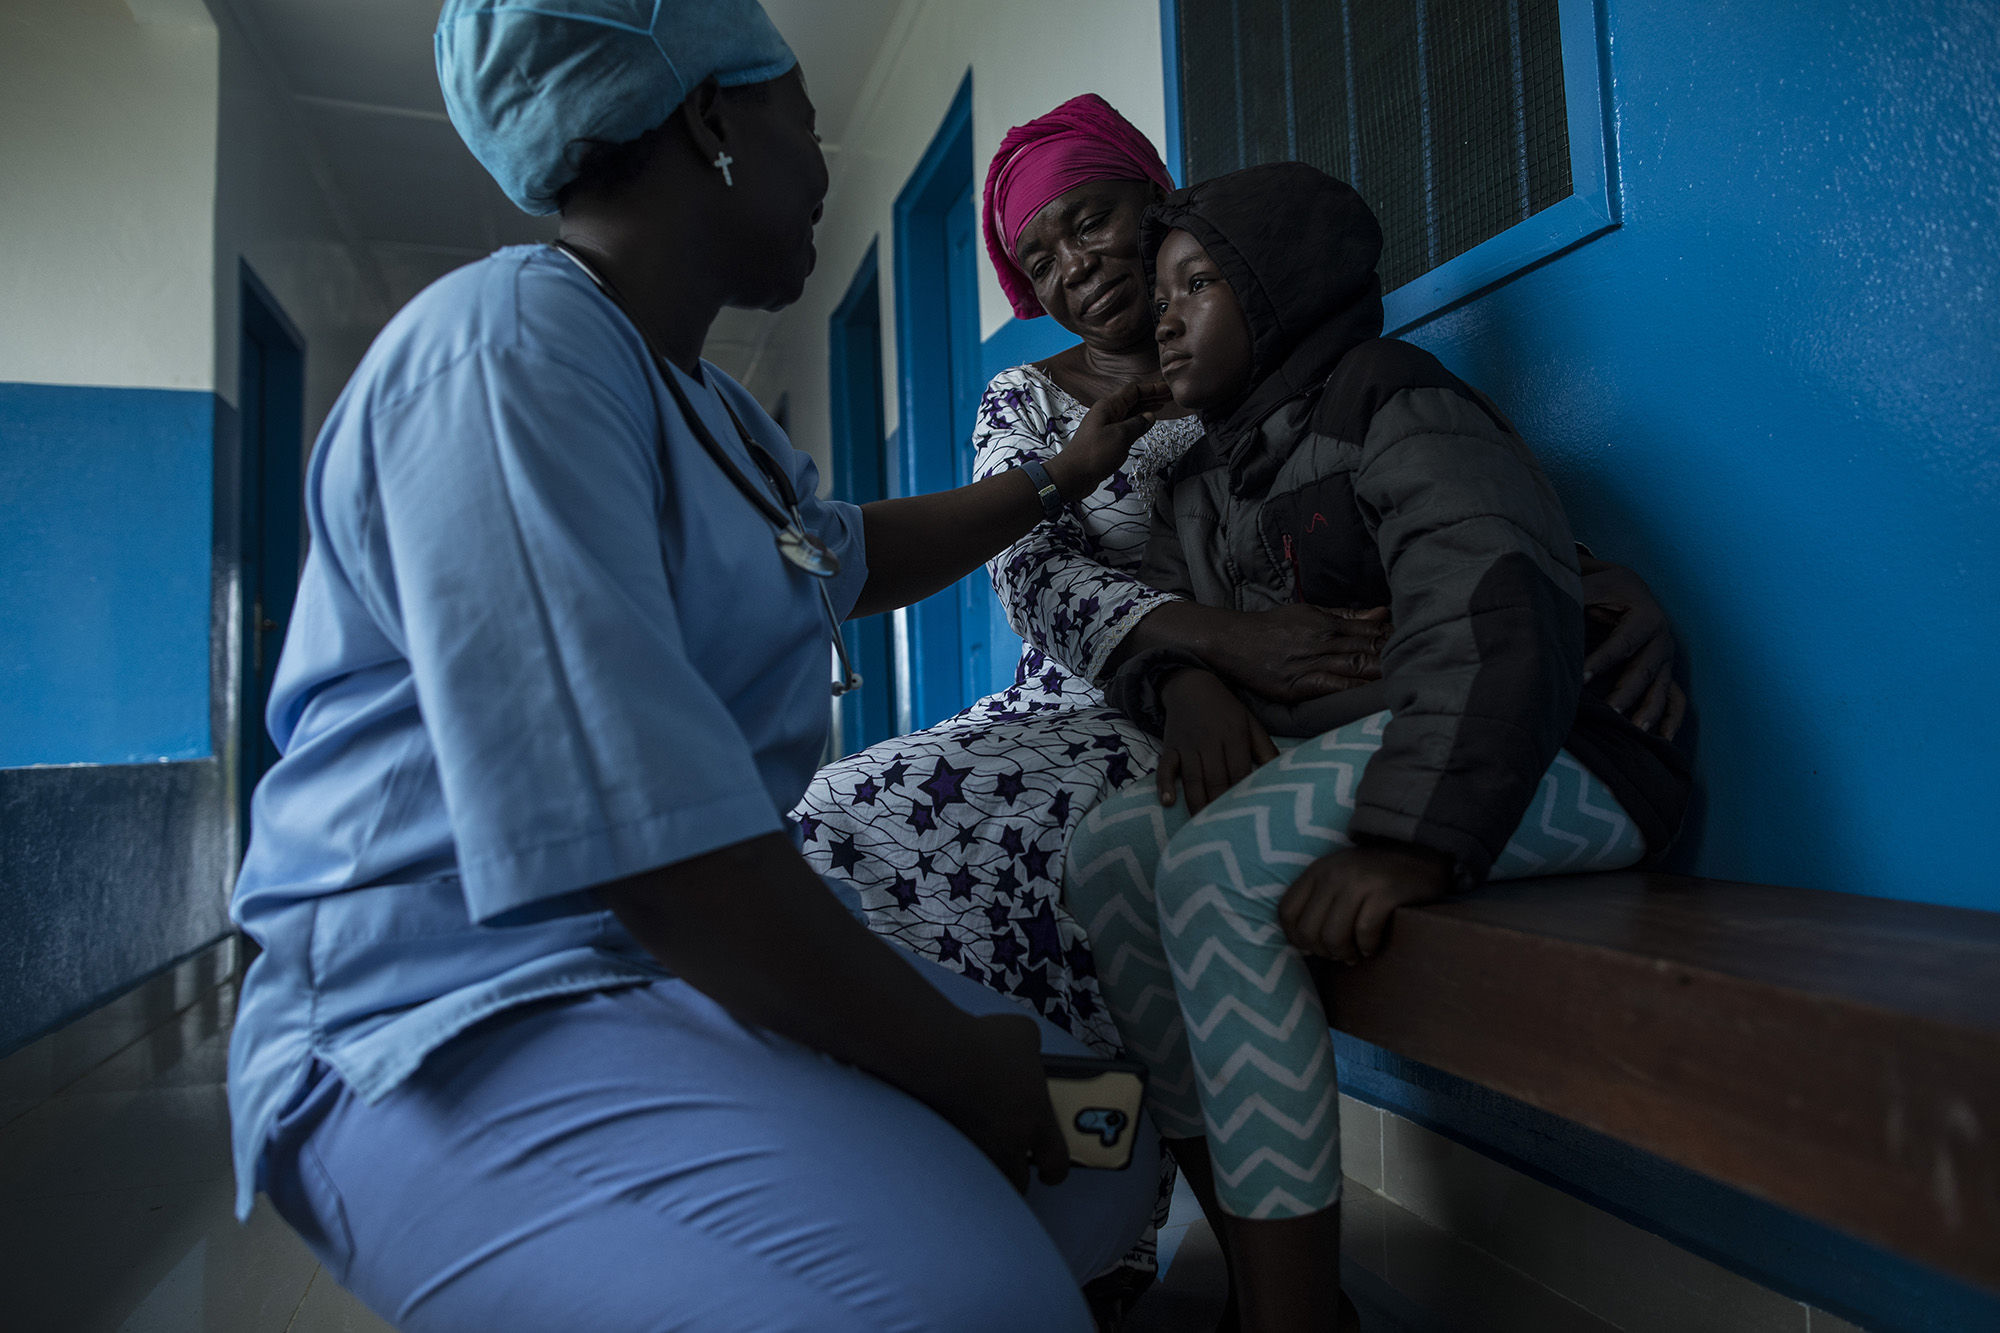 """BREWERVILLE, LIBERIA: Aug. 22, 2017 - Wislyne S. Yarh Sieh is a registered nurse and Officer in Charge (OIC) at Kpallah Community Clinic in Brewerville. Wisylne worked as a healthcare worker during the Ebola outbreak in 2014-2015. Healthcare workers like Wislyne were left isolated and alone to fight this mysterious disease from the heart of the jungle. But, she, along with many others, continued to fight. """"Being a nurse is like being a soldier. You cannot take your uniform off when there is battle. Then you are not a soldier. So I went on the frontline because I wanted to save lives,"""" she remembers. The Ministry of Health did not have a centralized system to communicate vital information to healthcare workers across the country at the same time. UNICEF and USAID worked together to create a platform that utilized mobile phones to facilitate a two way communications system between healthcare workers and the centralized ministry. Because of this new technology, healthcare workers across the country can receive text messages with important information about health emergencies. They are also able to use their phones to inform the Ministry of Health about the status of stocks in the clinic. Since Ebola, Wislyne has started using the new platform and now feels more connected and informed. She says, """"If this program just stopped without things being in place, it would carry our work backward. It would make my work longer and delay treatment of the patients."""" Photo by Sarah Grile."""